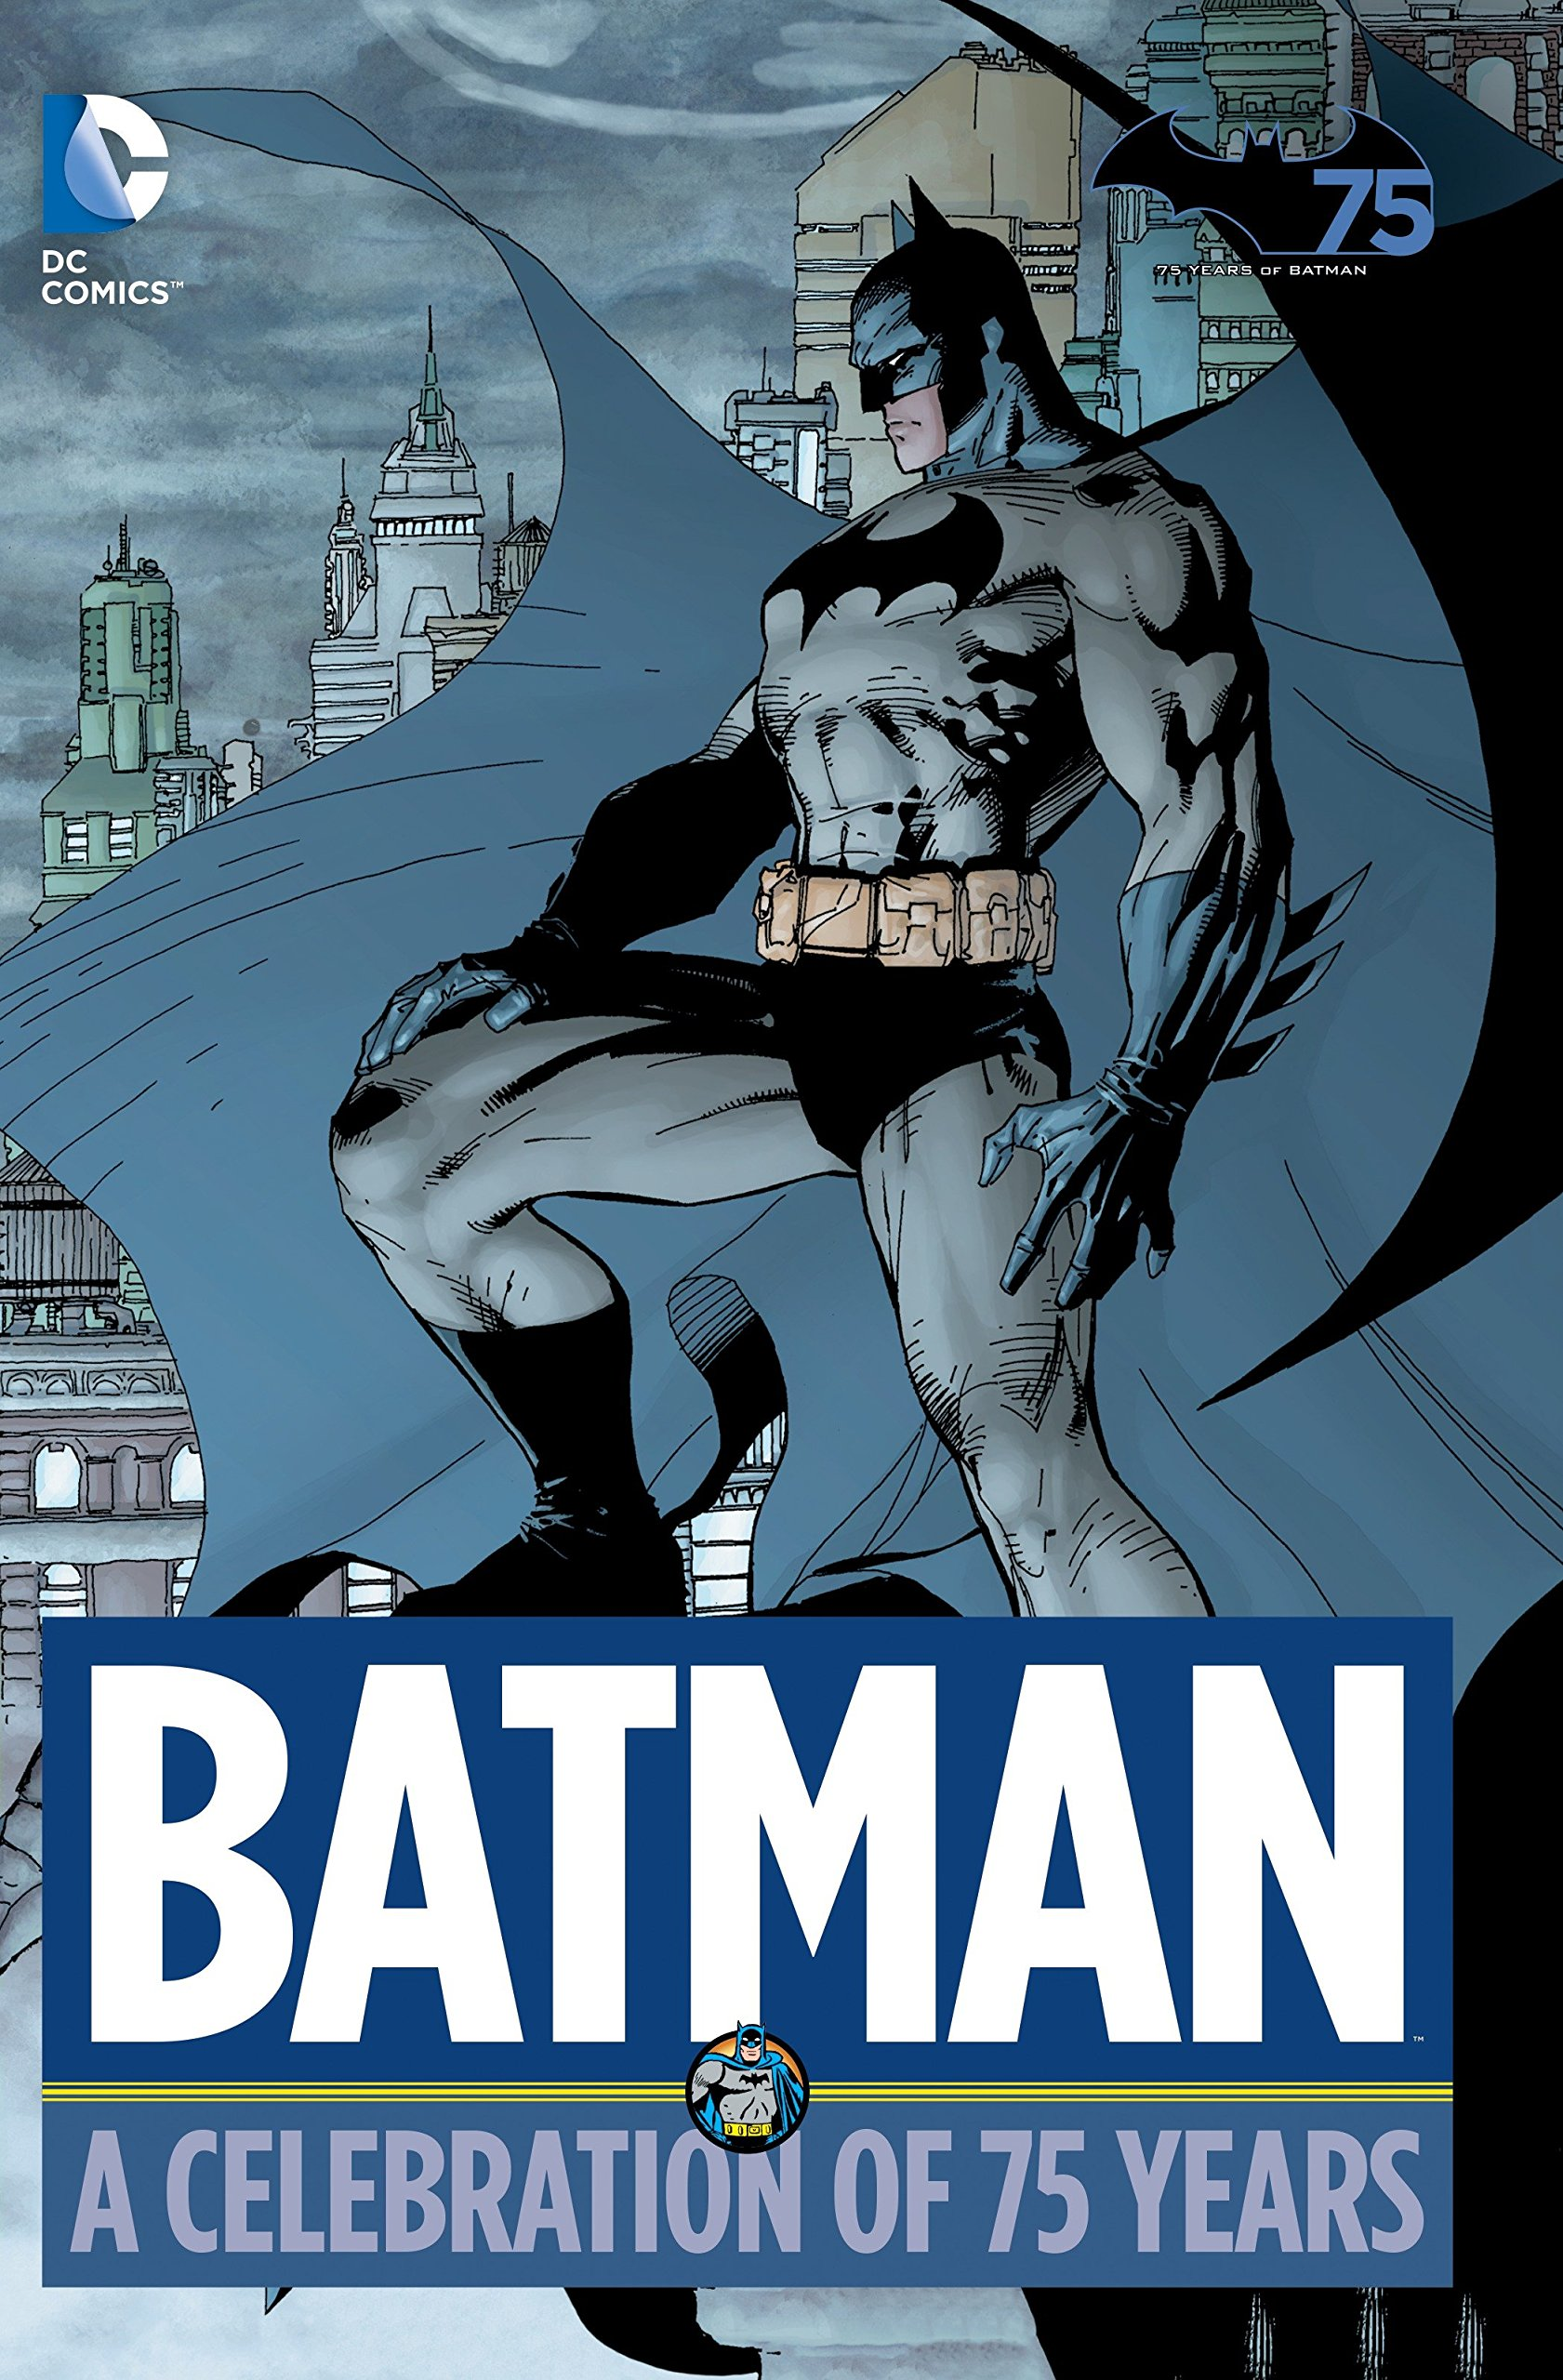 Batman: A Celebration of 75 Years by DC Comics